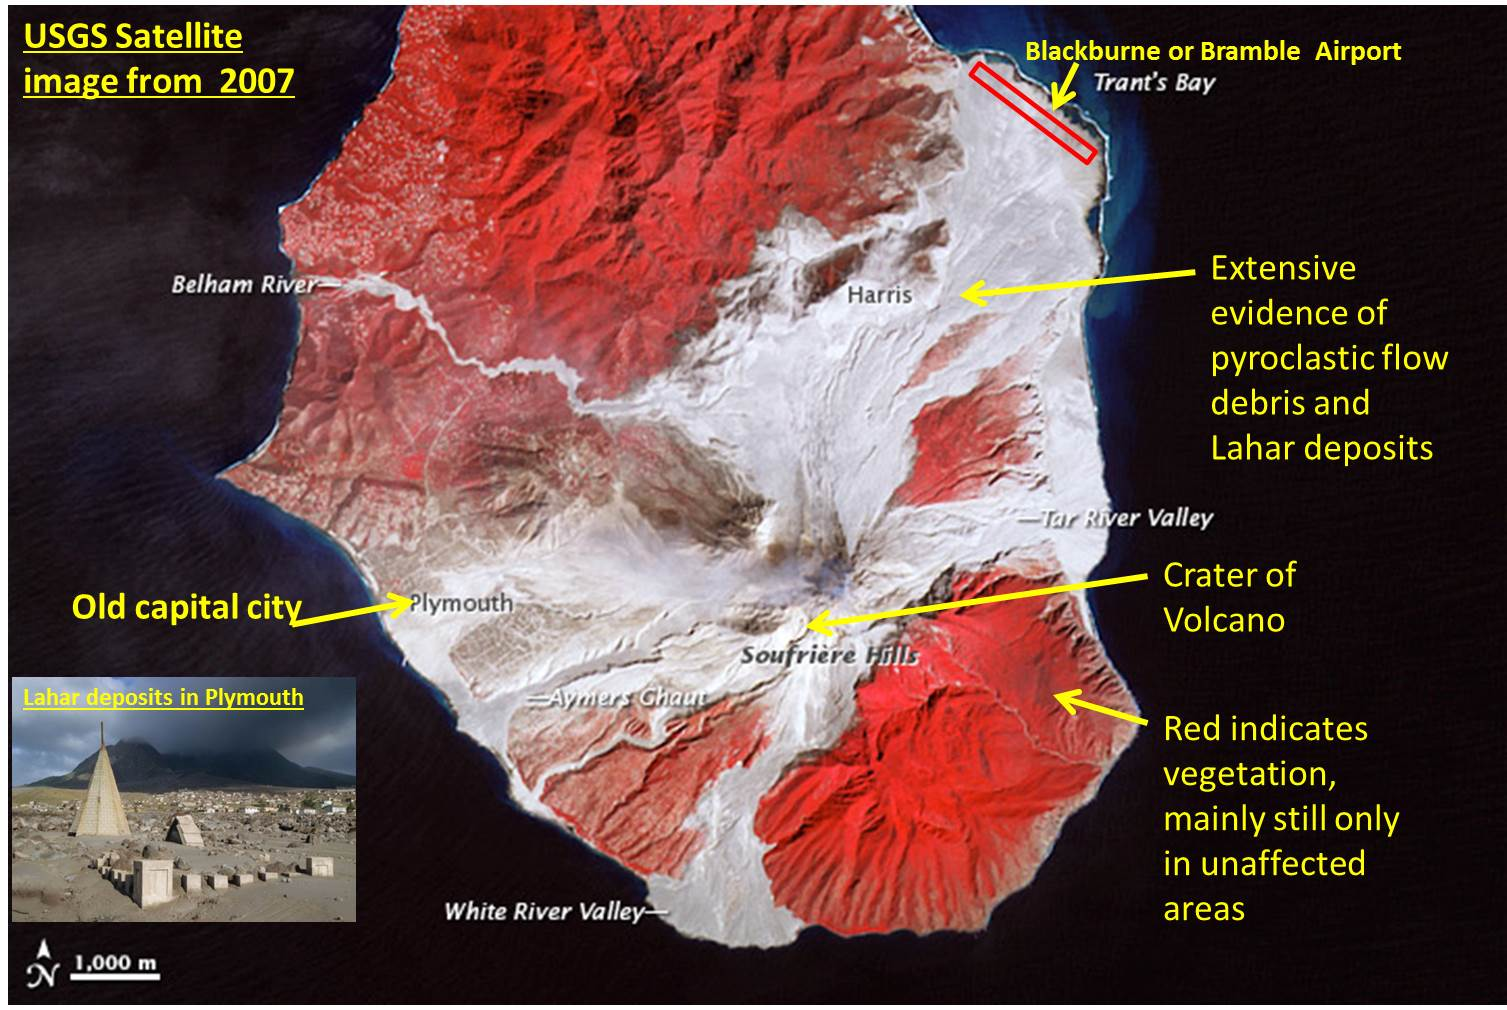 montserrat volcano eruption 1995 essay Volcanic essays - see the list of response to this continuous volcanic activity from july 1995 to july 1999 on montserrat volcanic eruptions.